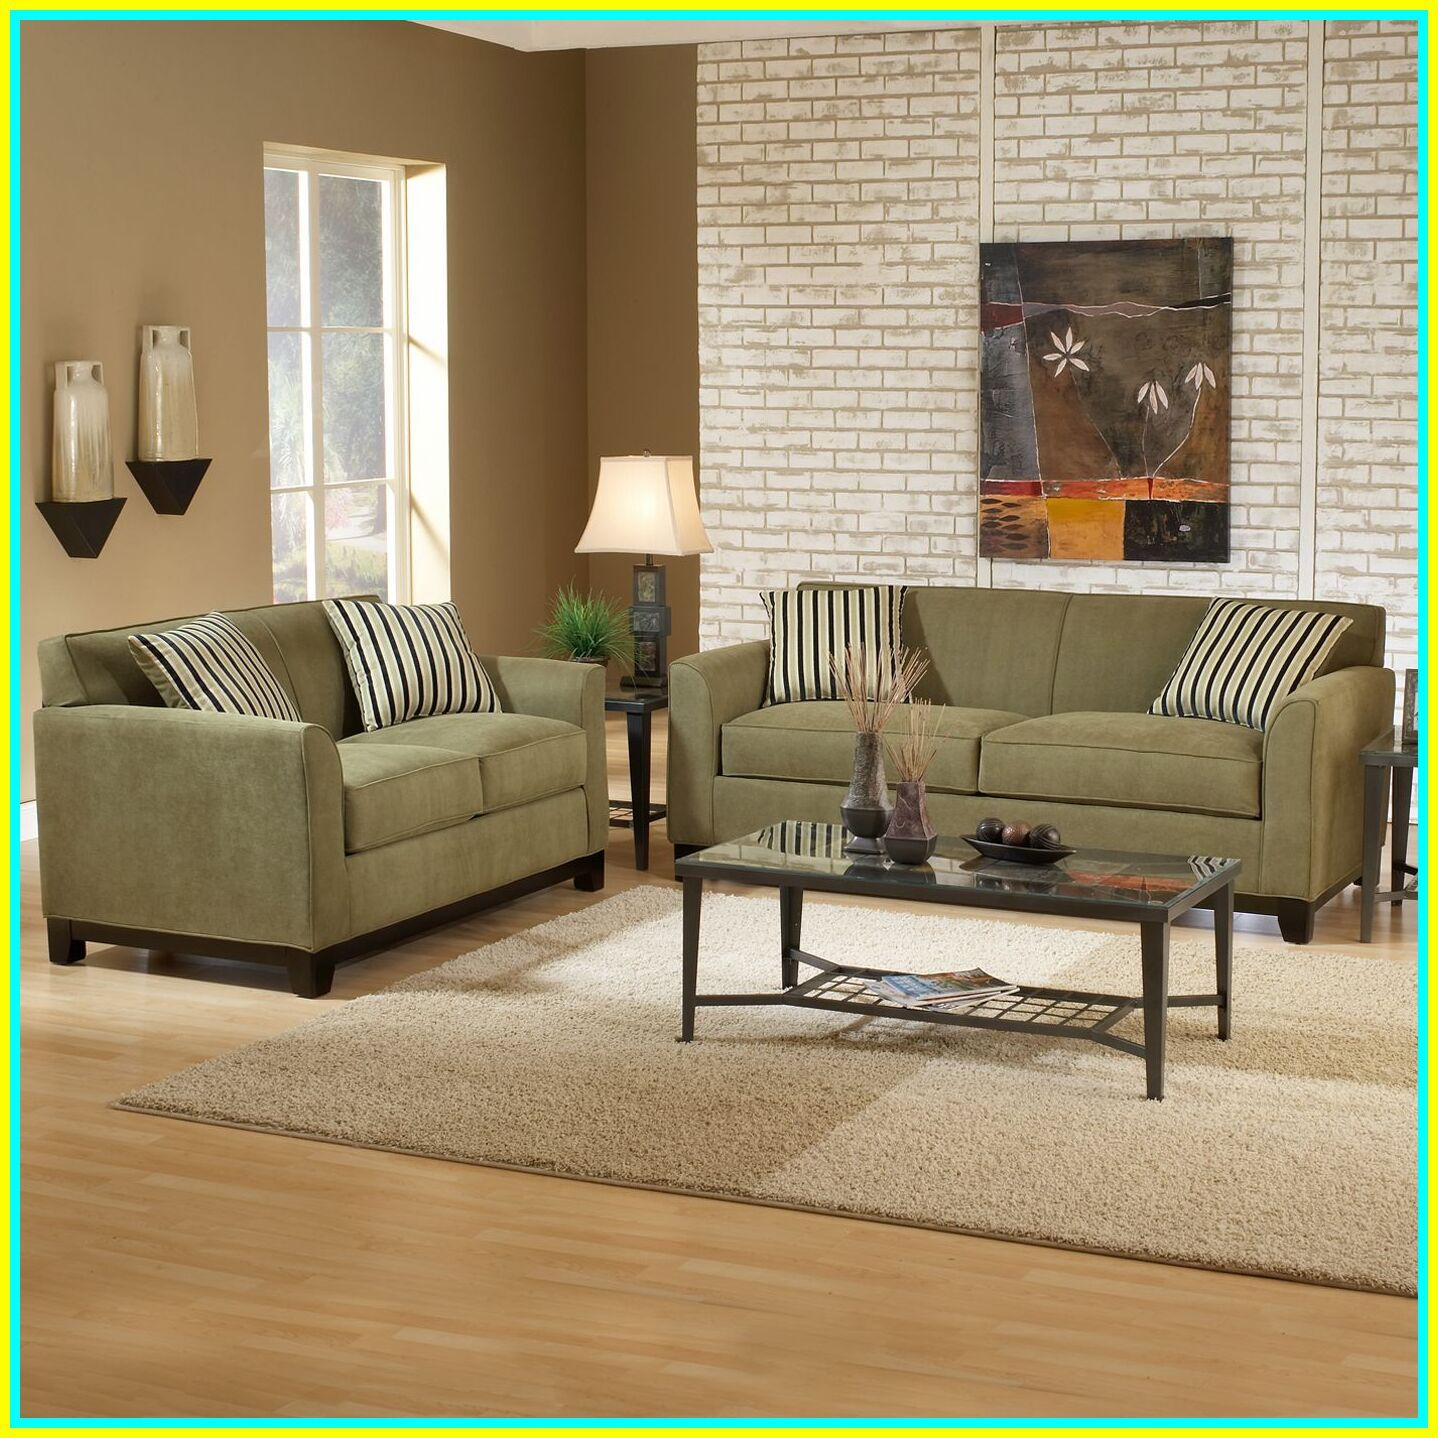 32 reference of couch pillows sage green in 2020 Green